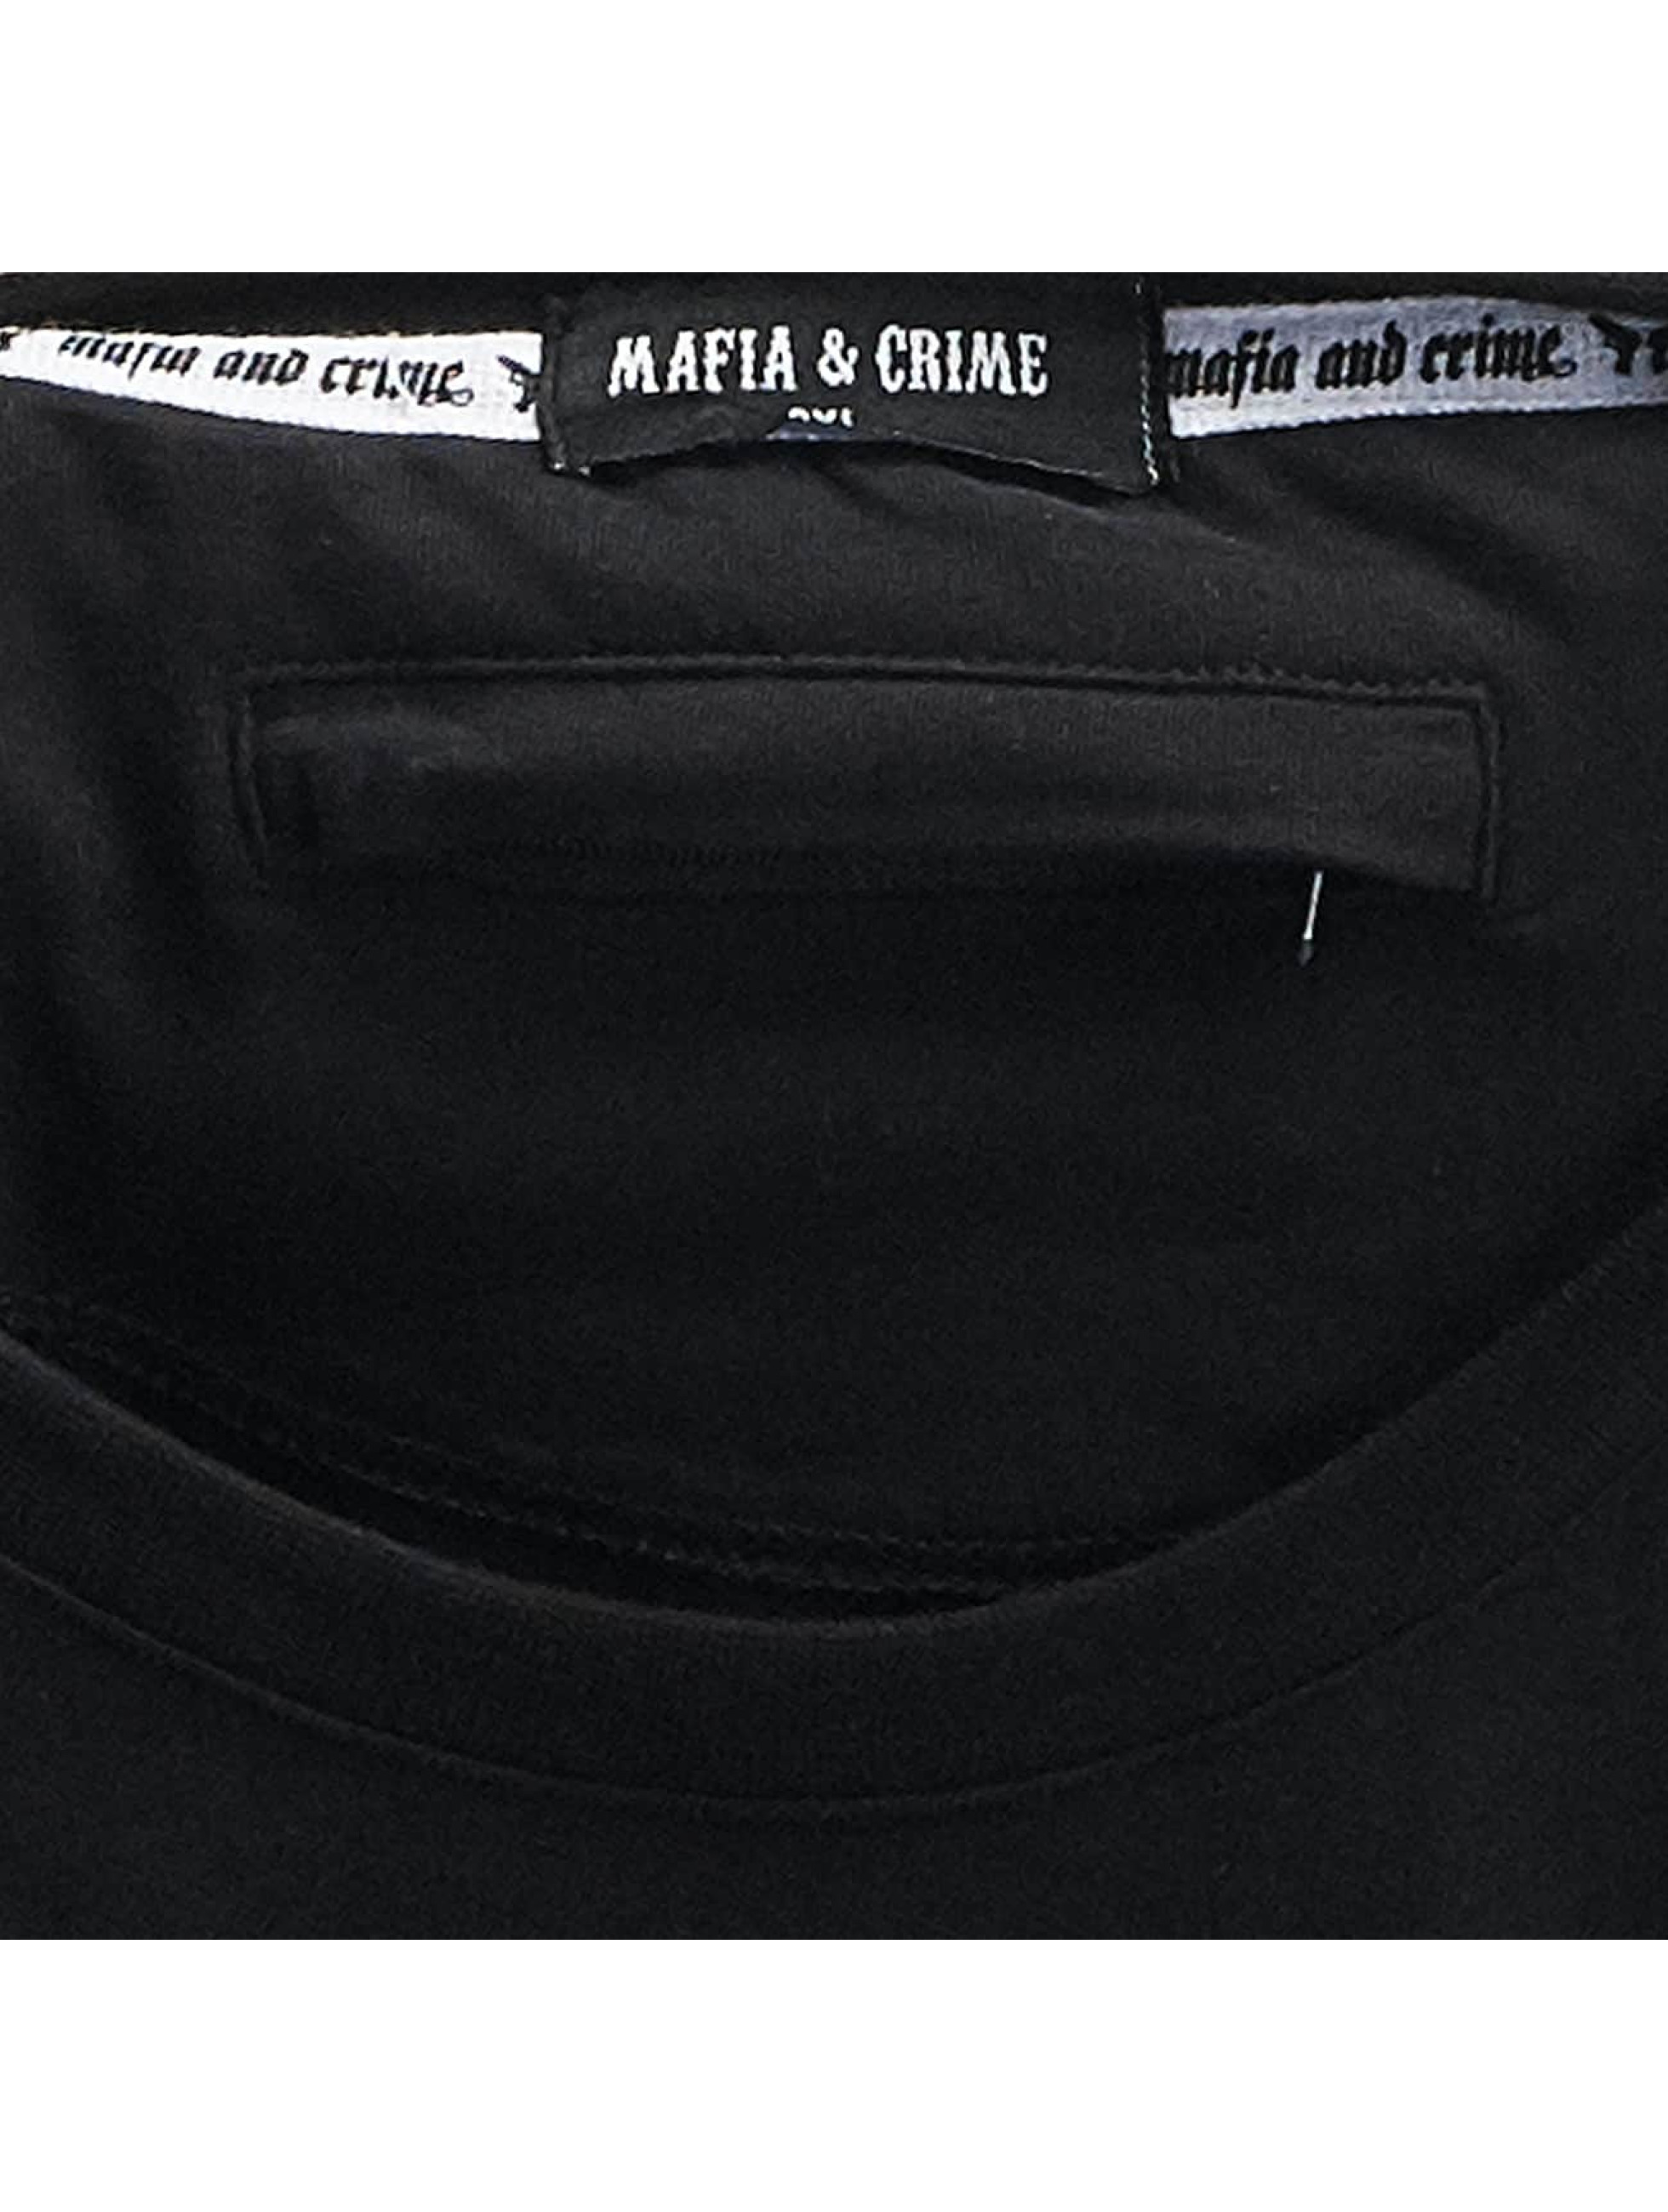 Mafia & Crime T-Shirt Cocaine Everybody Nose black